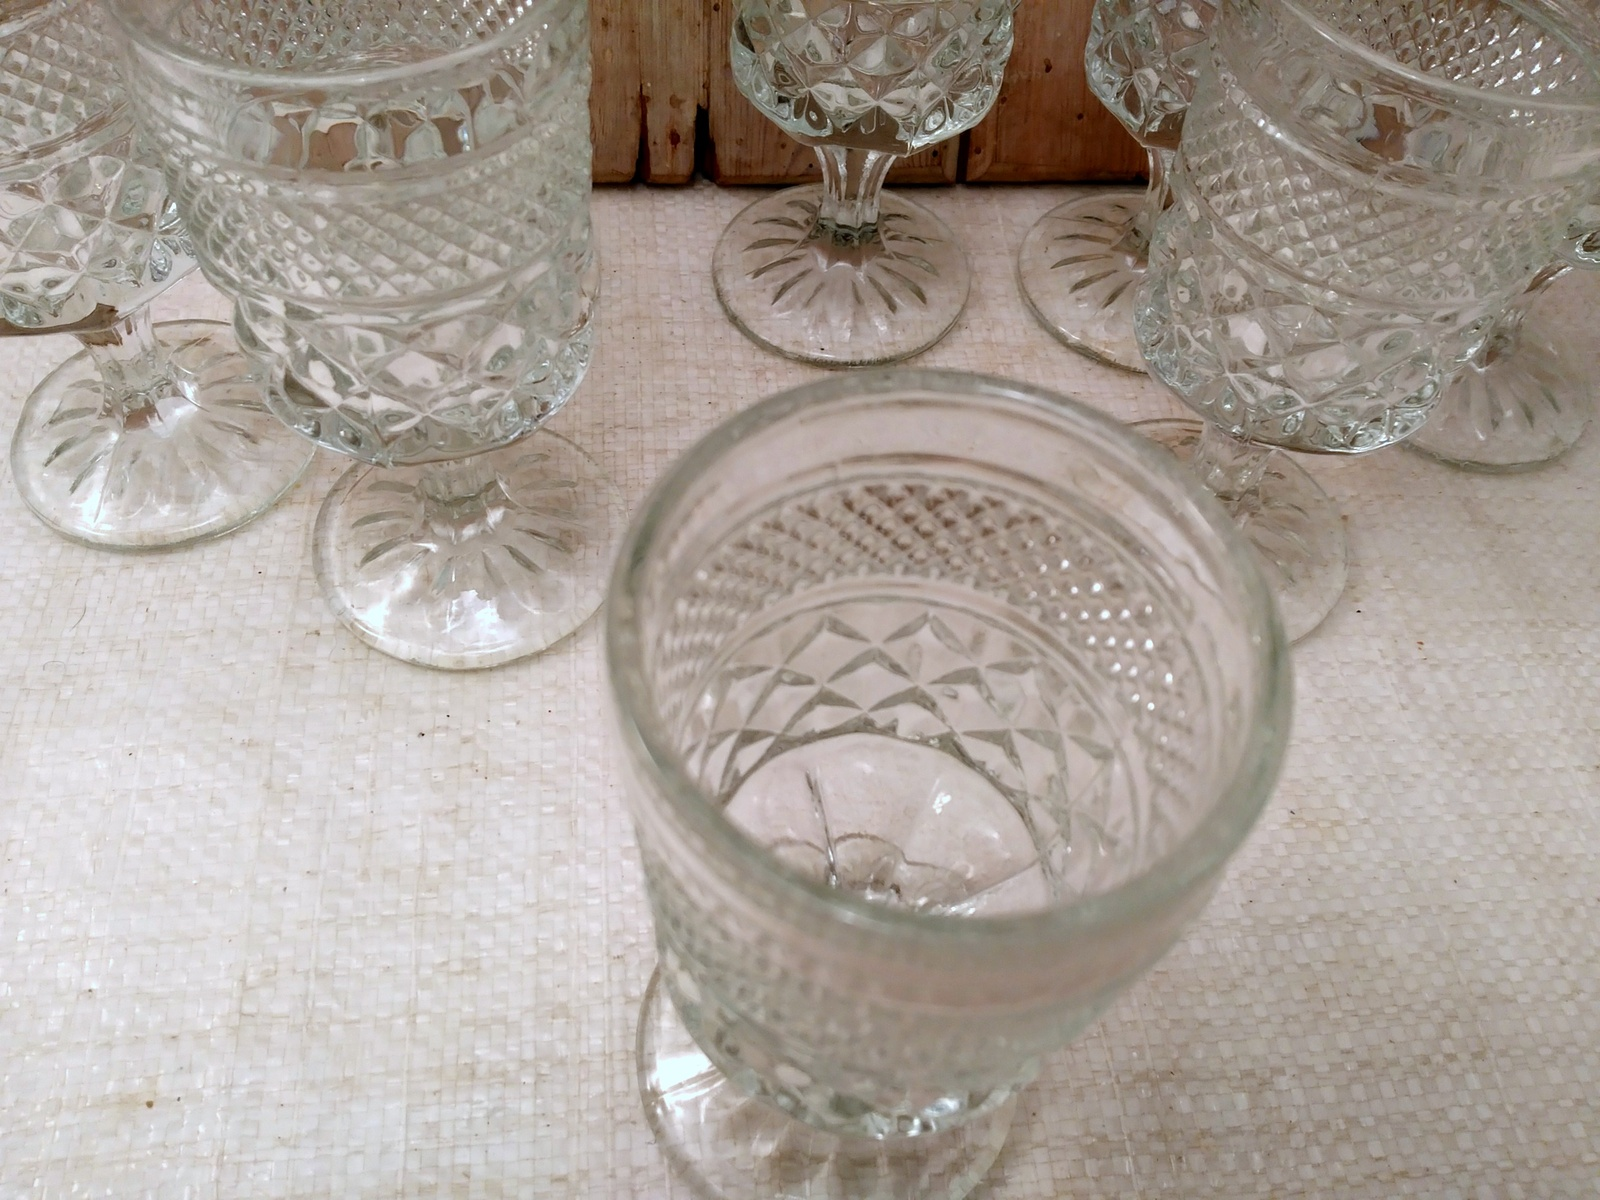 Set of 8 ANCHOR HOCKING WEXFORD WINE GOBLETS 5- 1/4 in. H